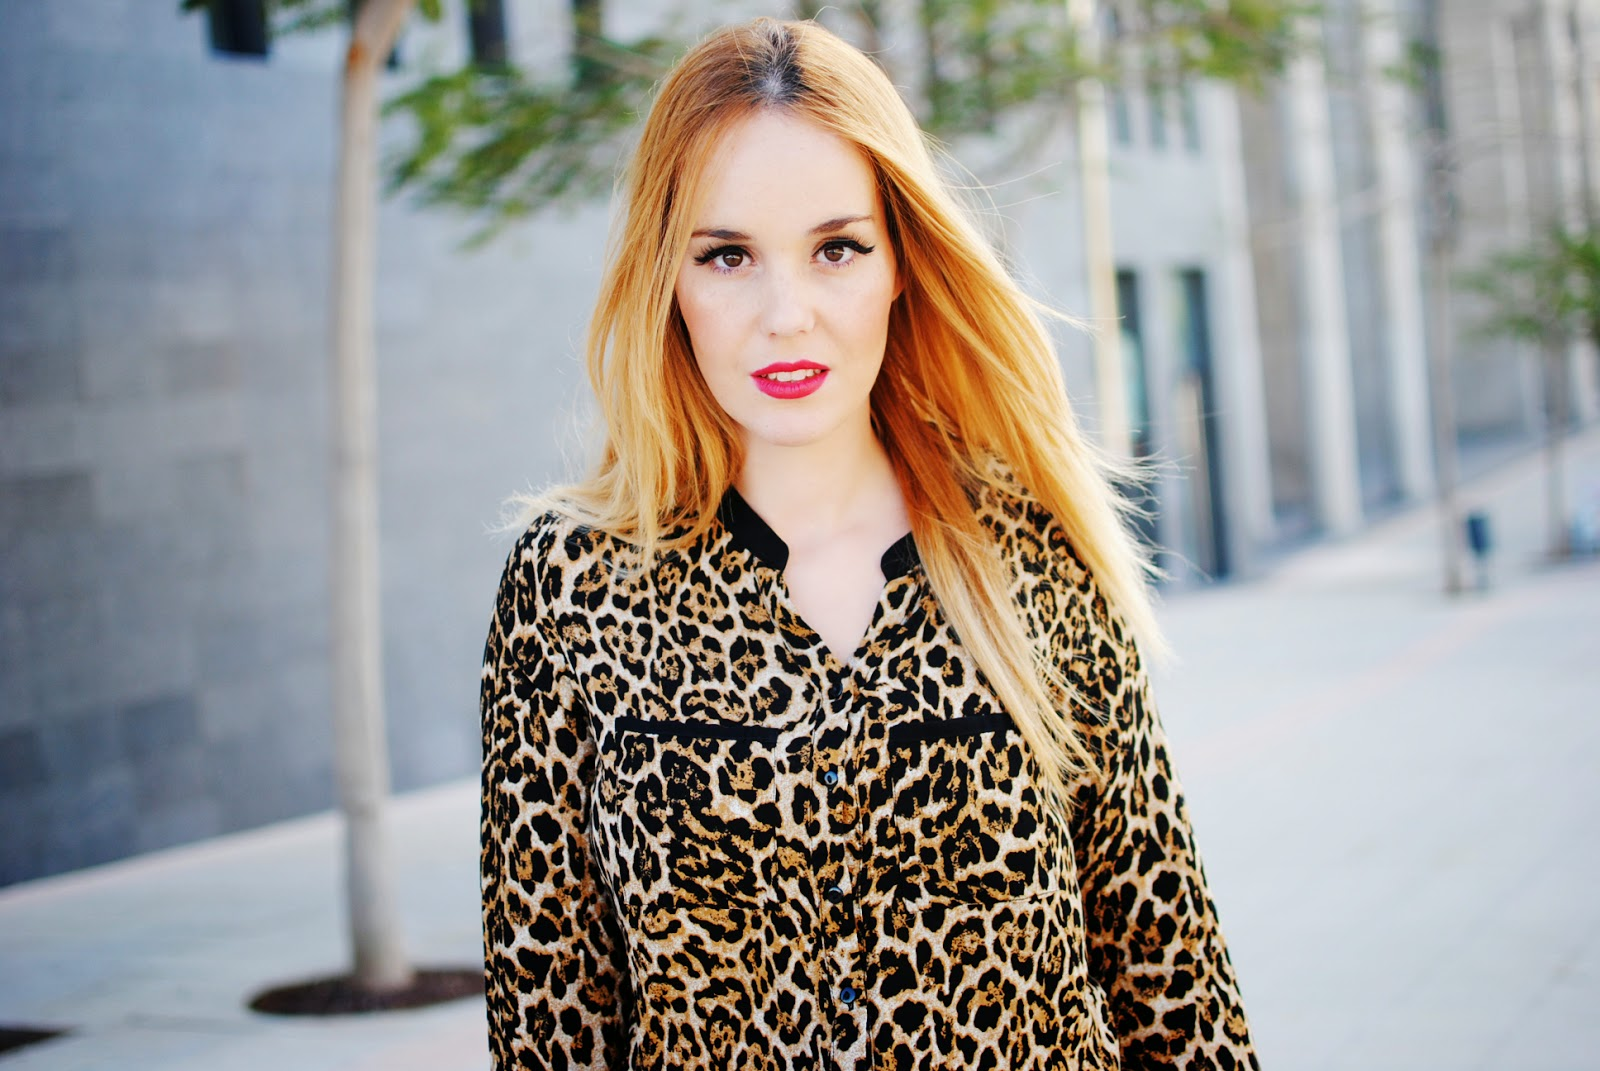 nery hdez, chicnova, print animal, estampado animal, estampado leopardo, mechas californianas, ombre hair